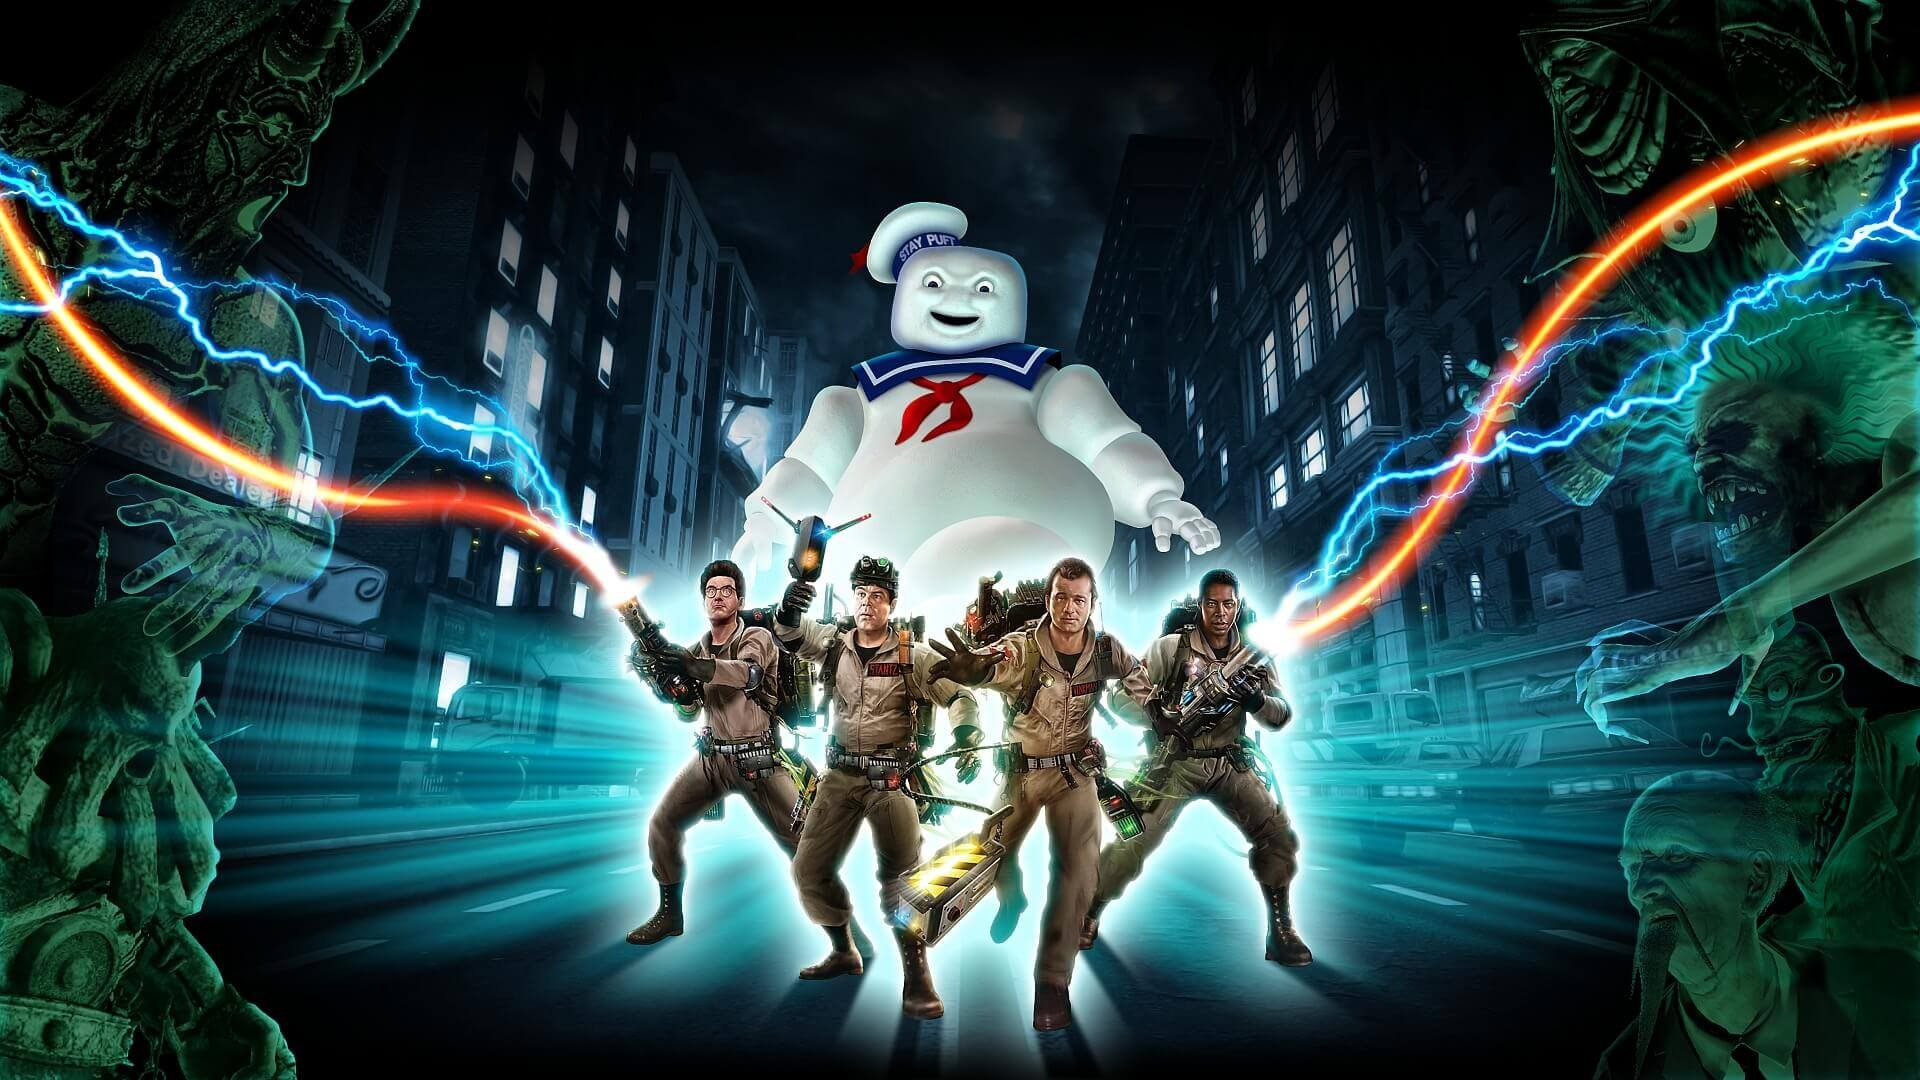 Ghostbusters: The Video Game Slimes PS4 from 4th October